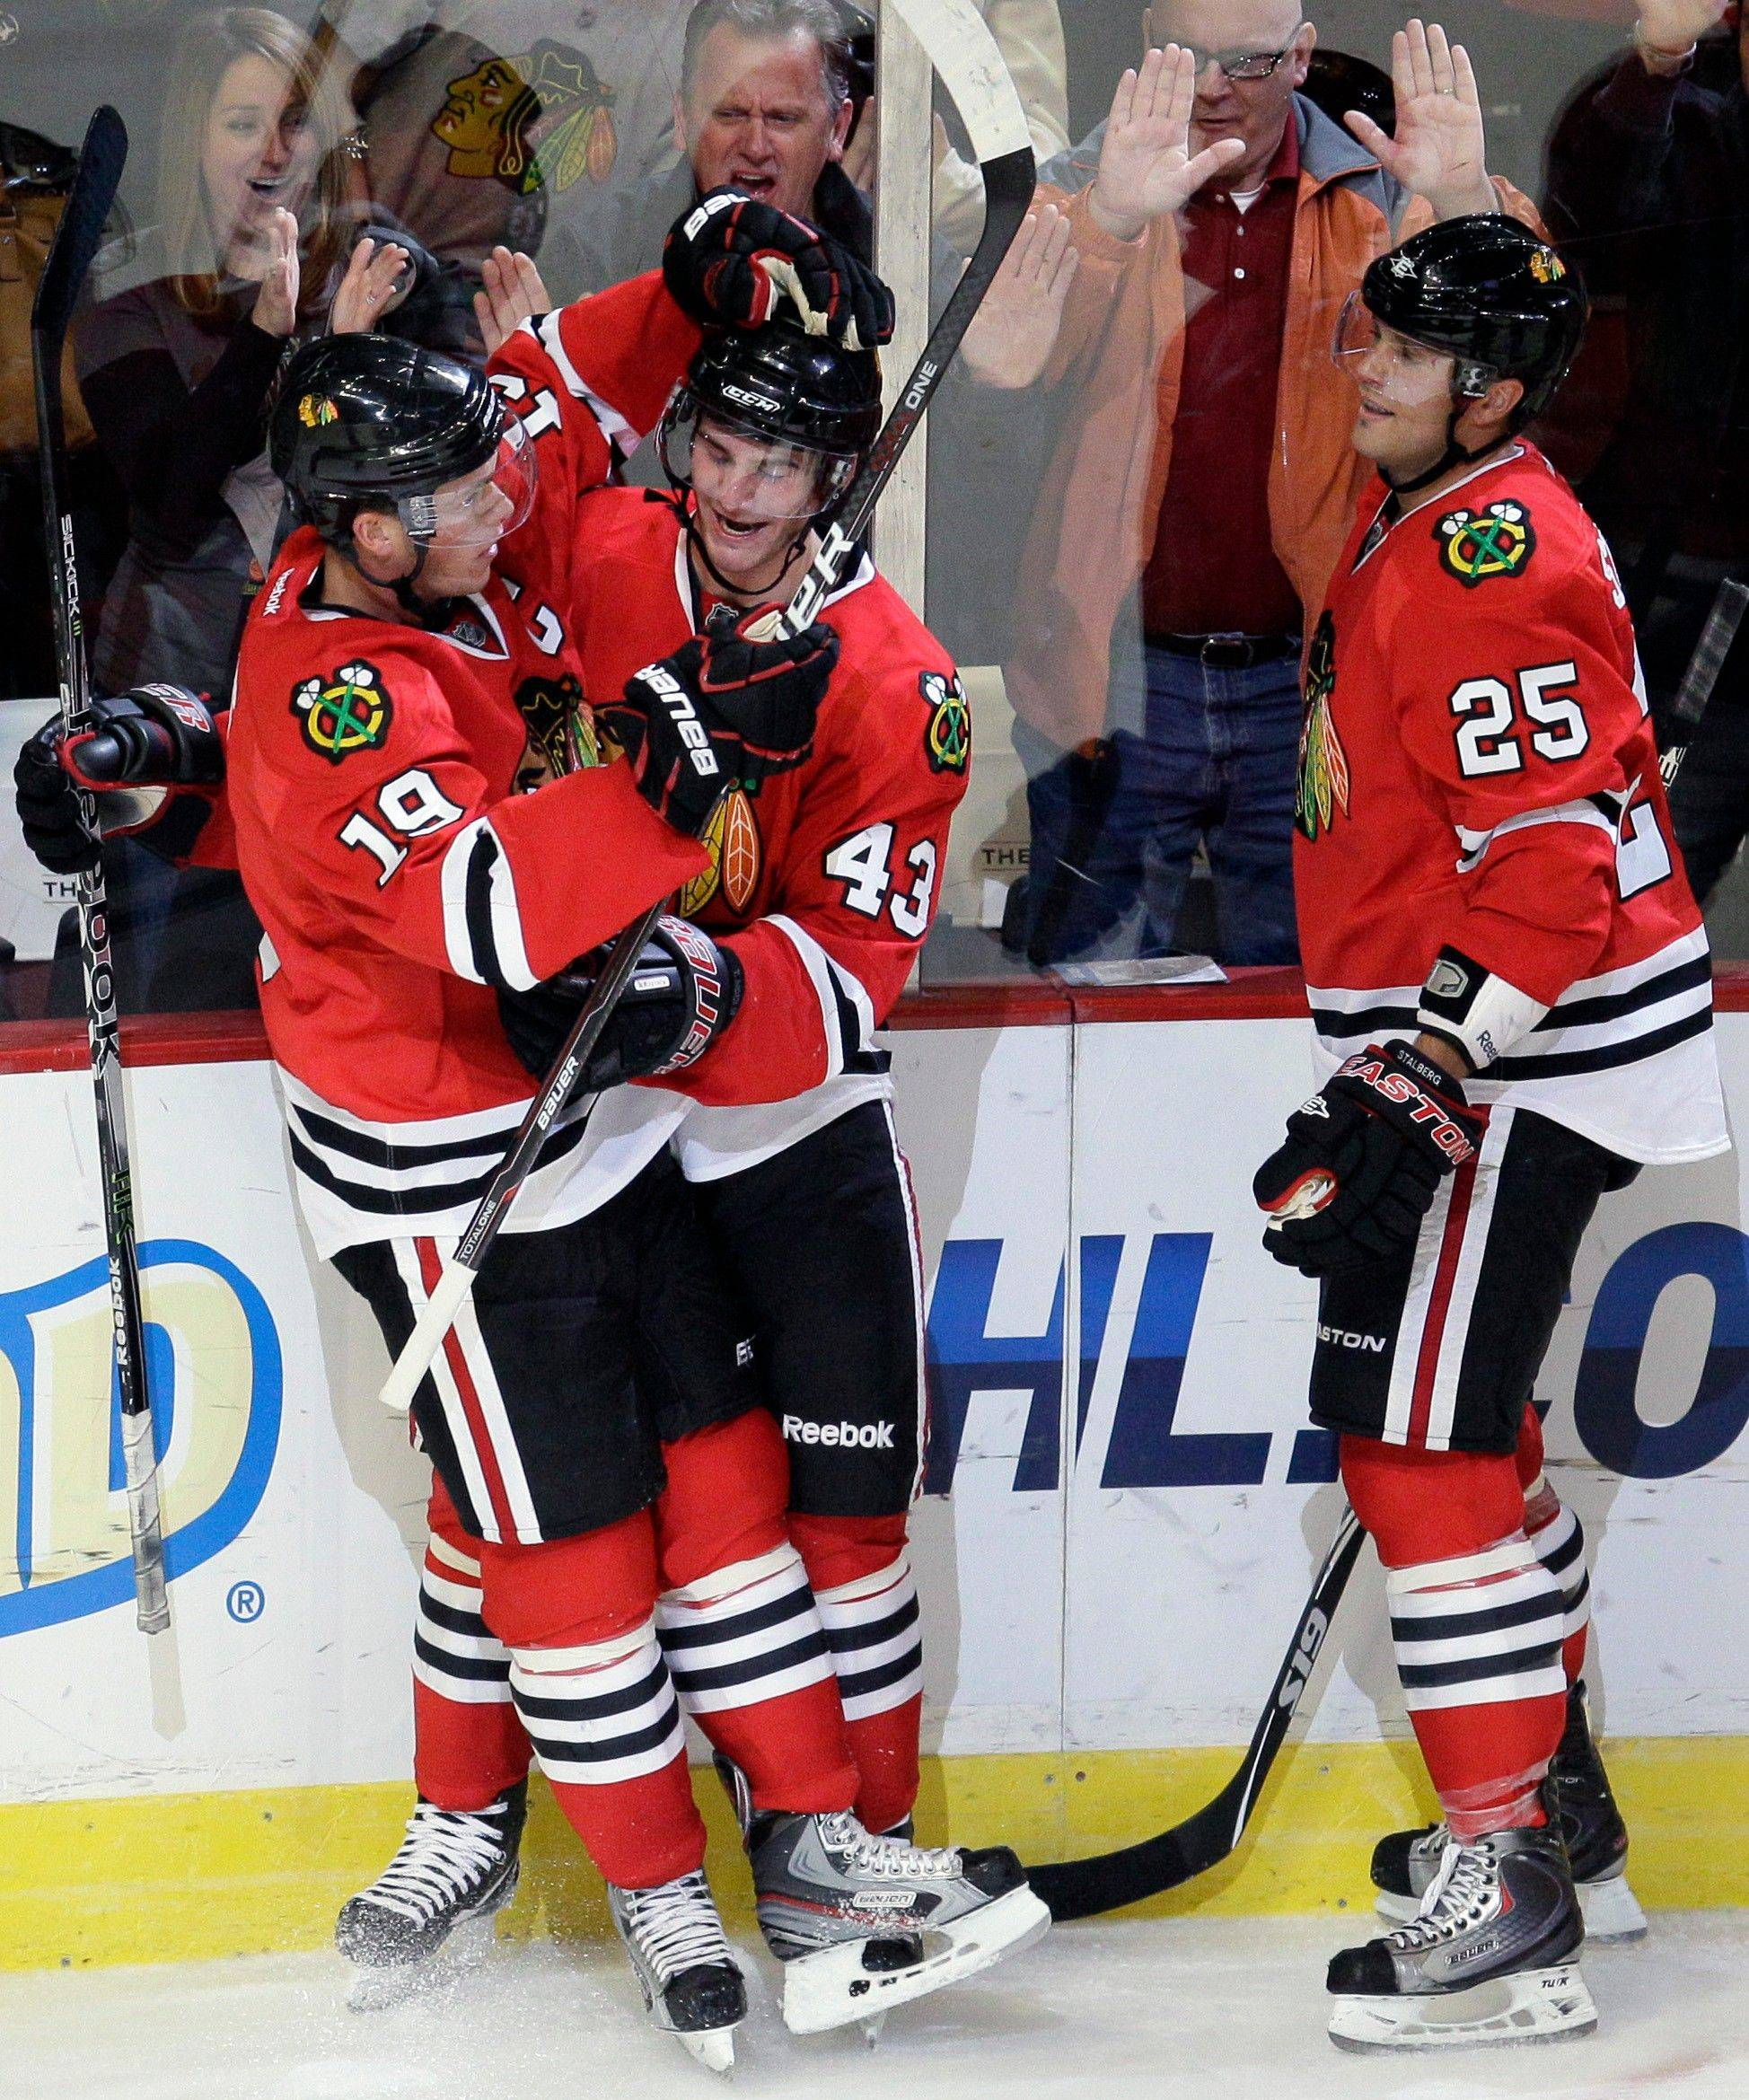 Chicago Blackhawks' Brandon Saad (43) celebrates with Jonathan Toews (19) and Viktor Stalberg (25) after Saad scoring the game winning goal during the third period of an NHL preseason hockey game against the Washington Capitals in Chicago, Friday, Sept. 23, 2011. The Blackhawks won 3-2. (AP Photo/Nam Y. Huh)